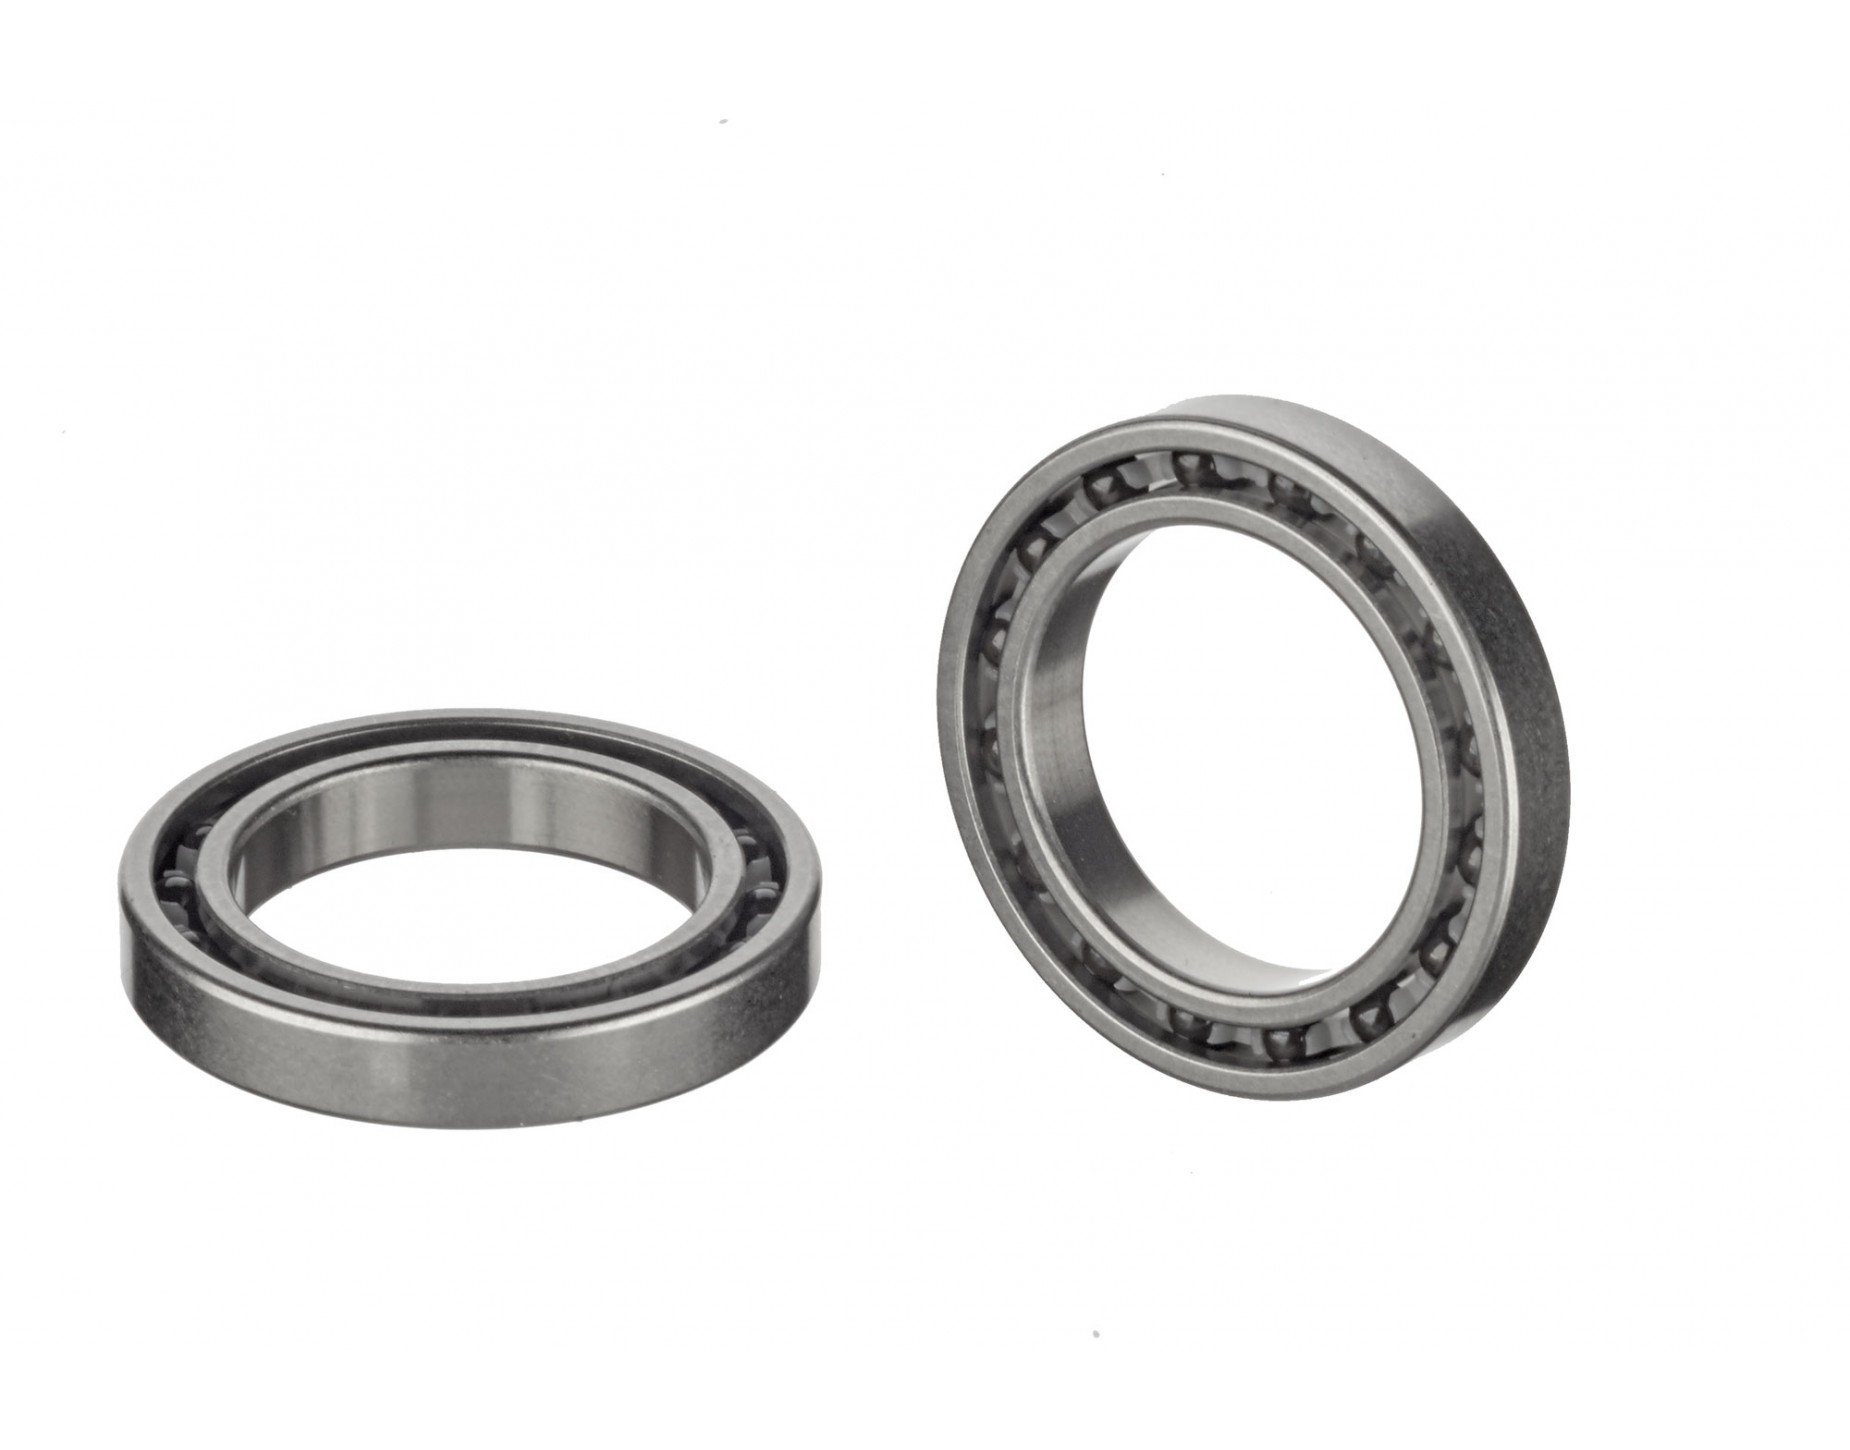 Bearing Puller Ultra Torque : Campagnolo super record ultra torque replacement bearing